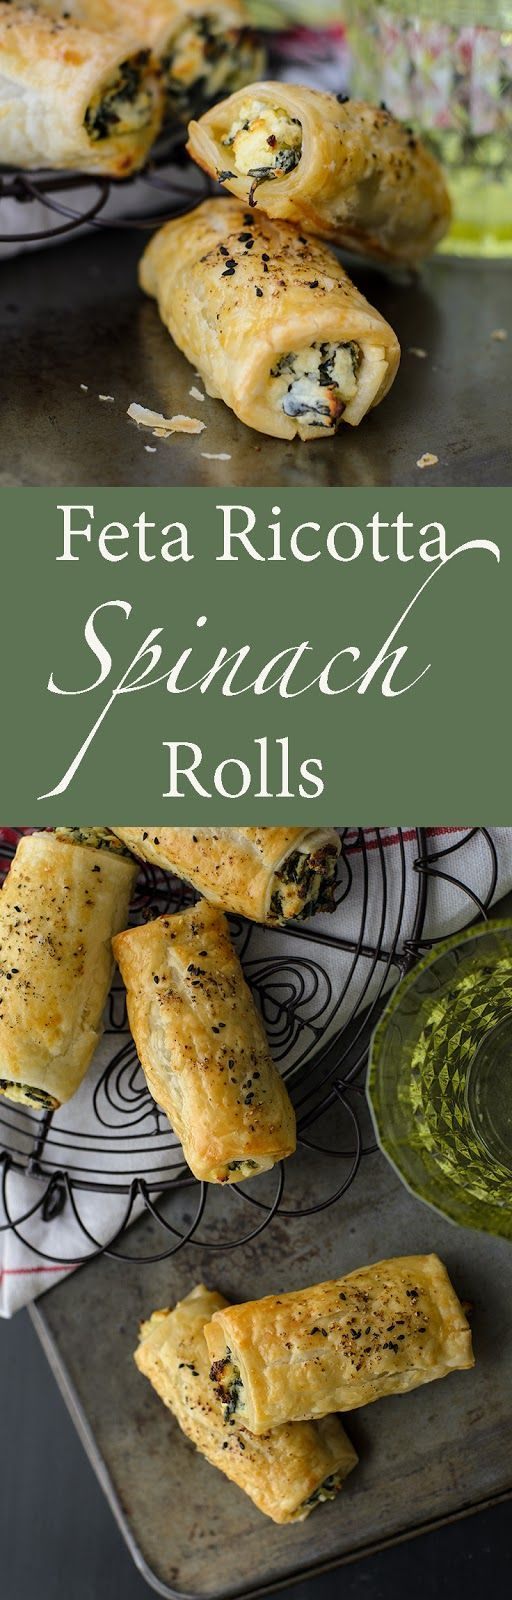 Lisa's Lemony Kitchen ....: Feta Ricotta Spinach Rolls with Video